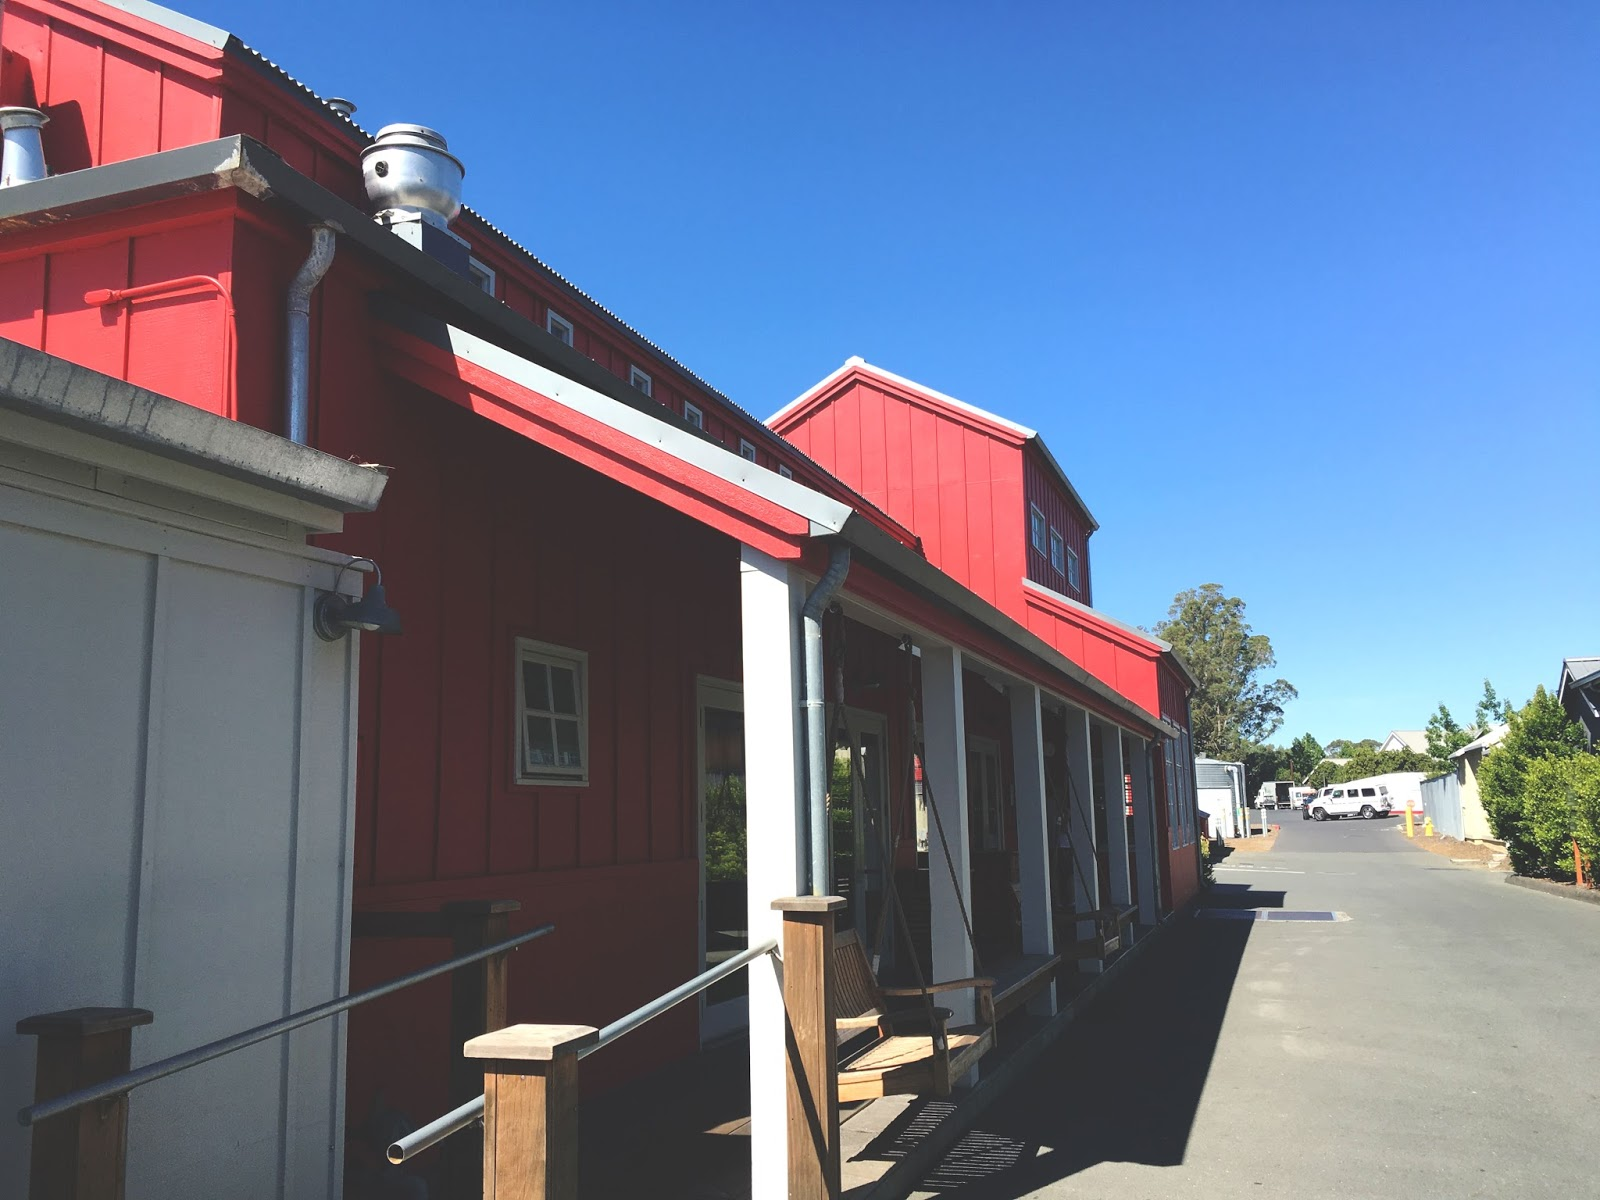 Boon Fly Cafe - a restaurant in Sonoma, California